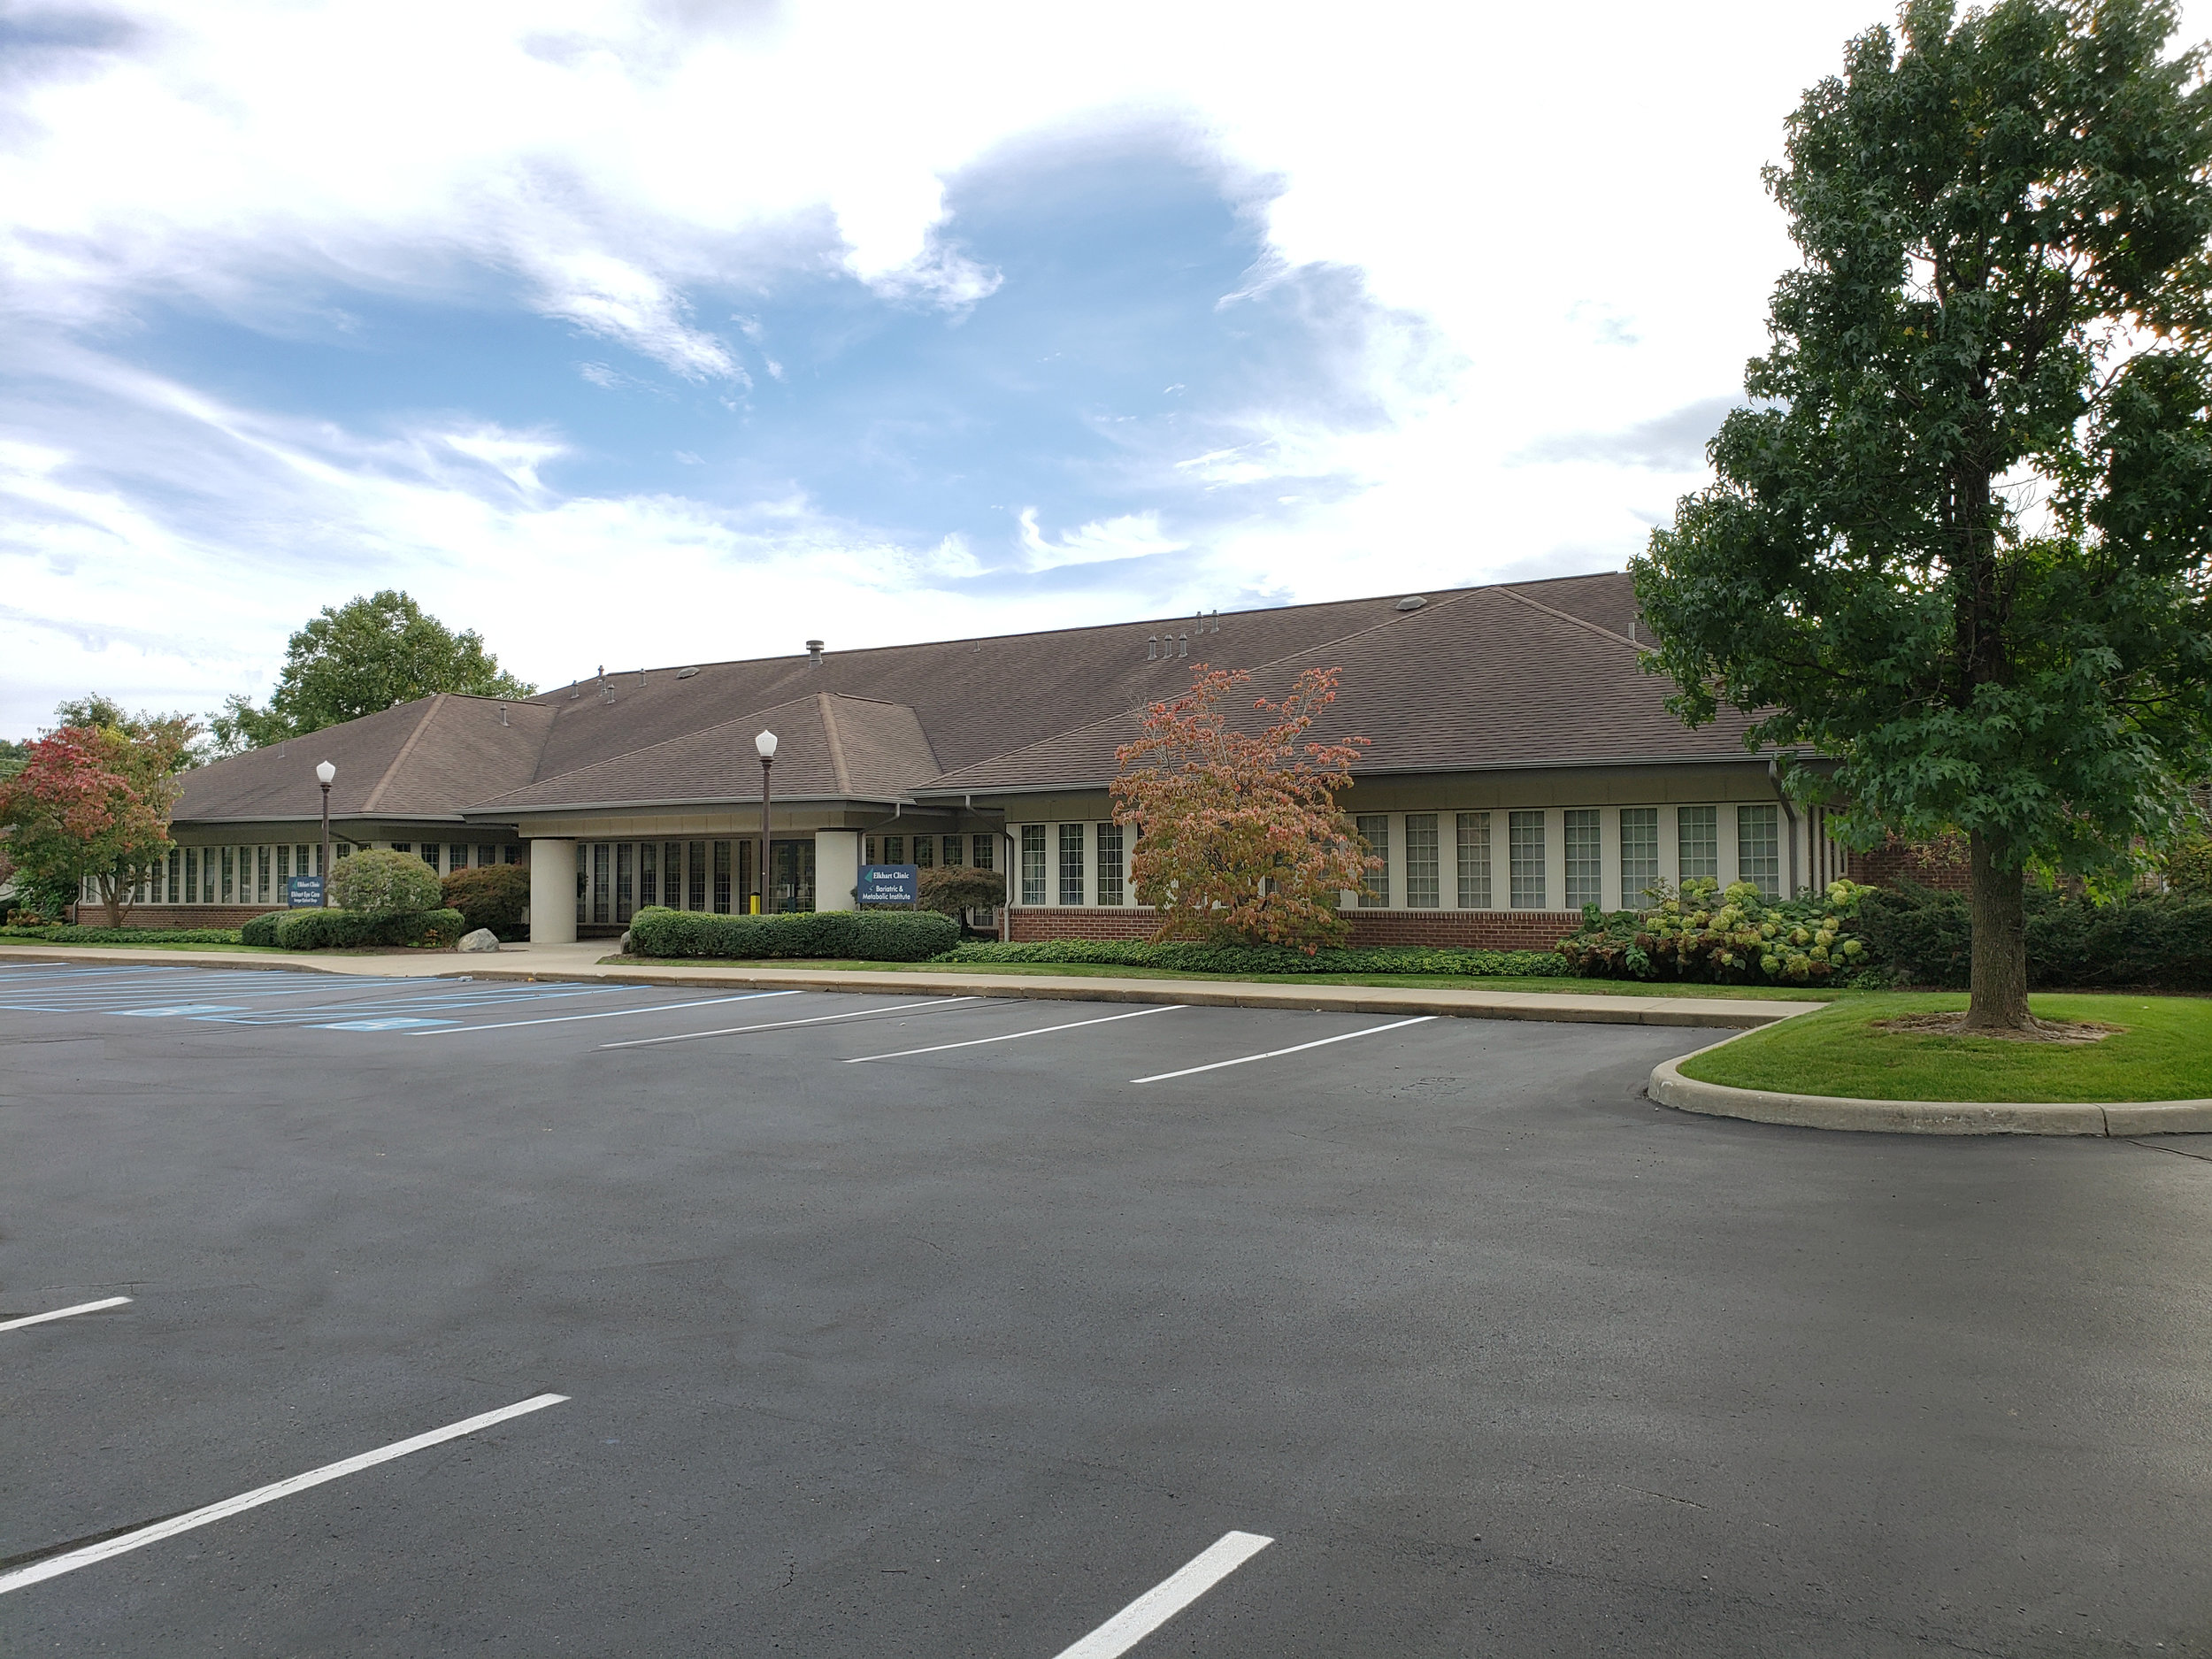 Abbott Eye Center Exterior 2 10 2019.jpg